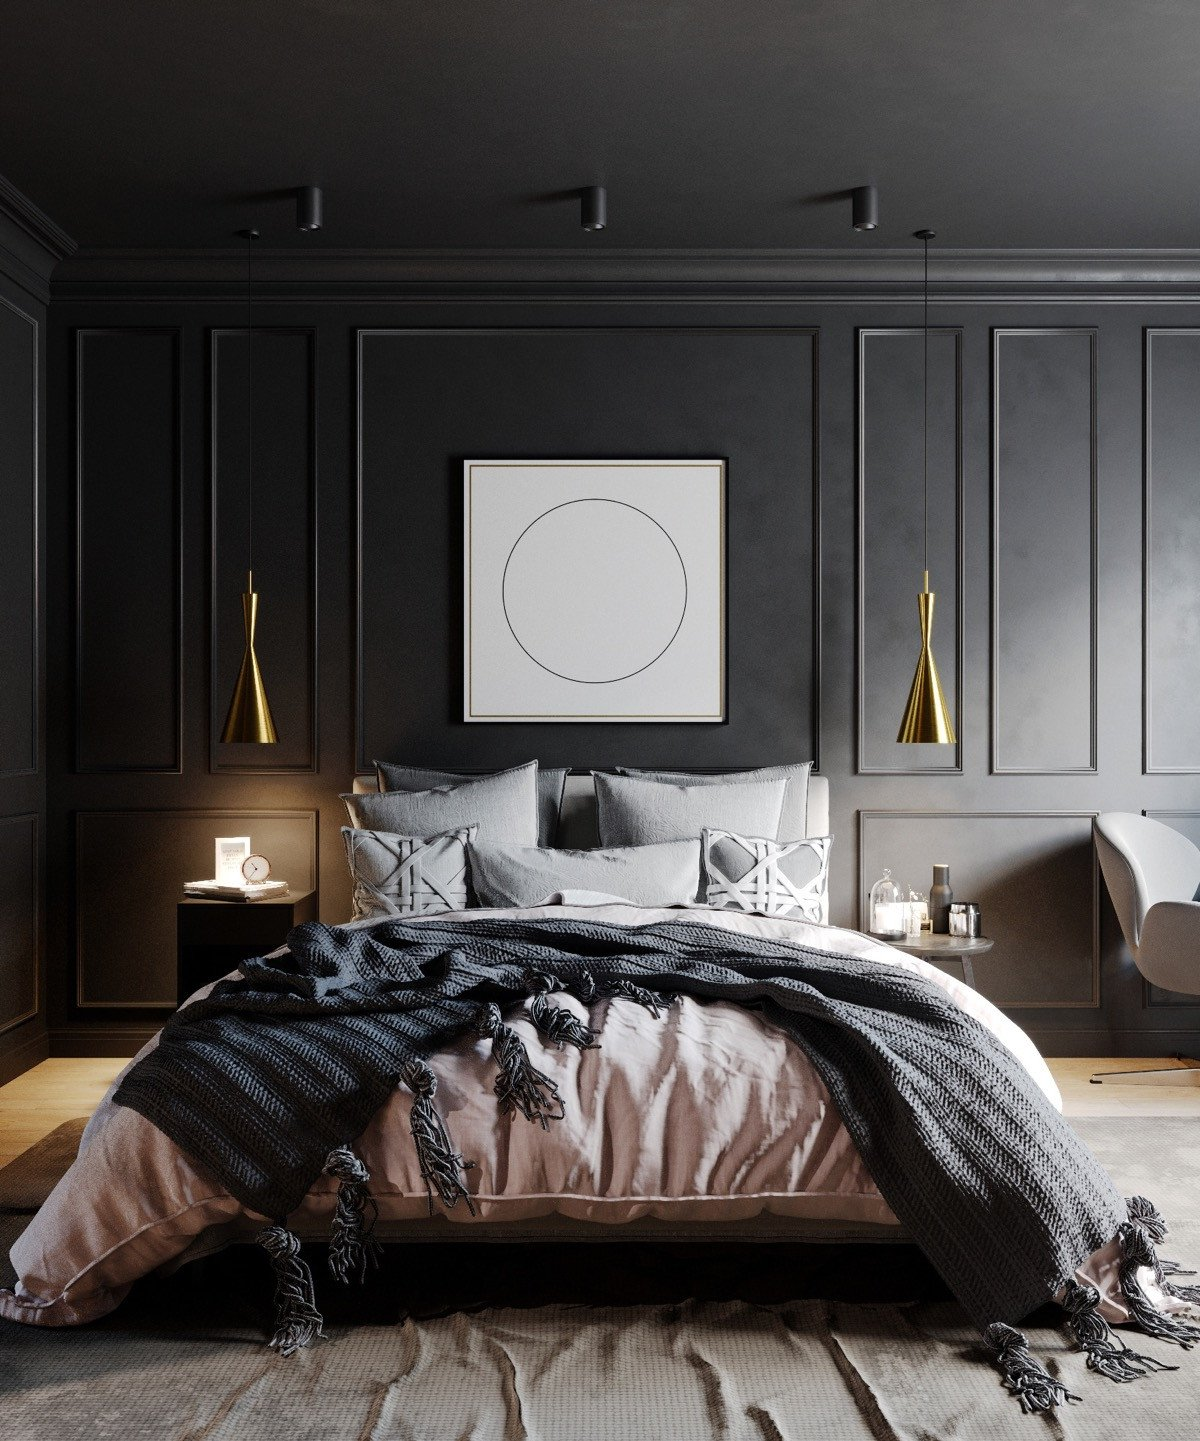 Black and Gold Bedroom Decor Lovely 51 Beautiful Black Bedrooms with Tips & Accessories to Help You Design Yours